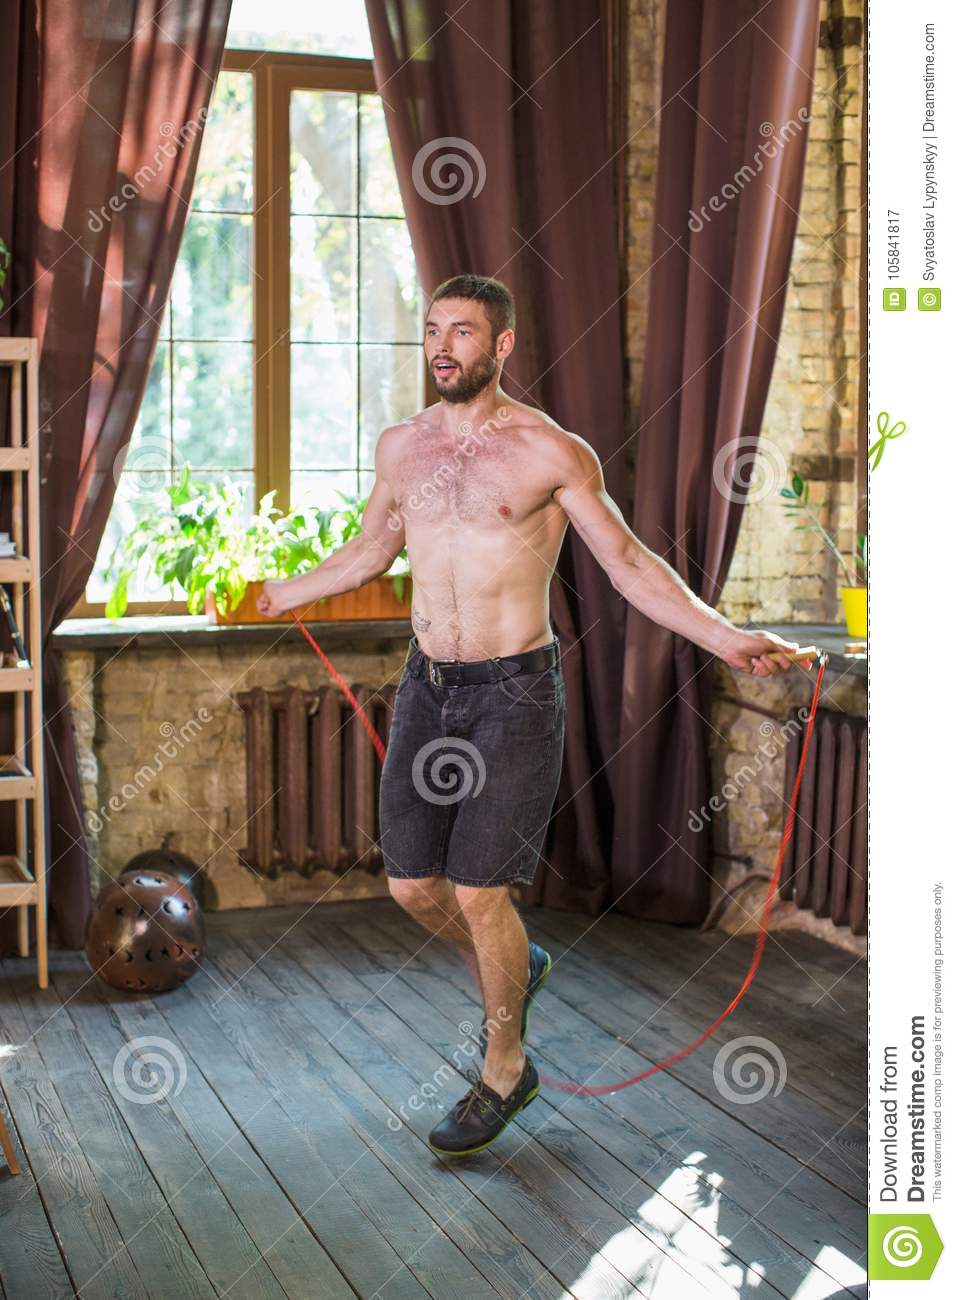 Man Doing Workout Jumping With Rope In Living Room Stock Image